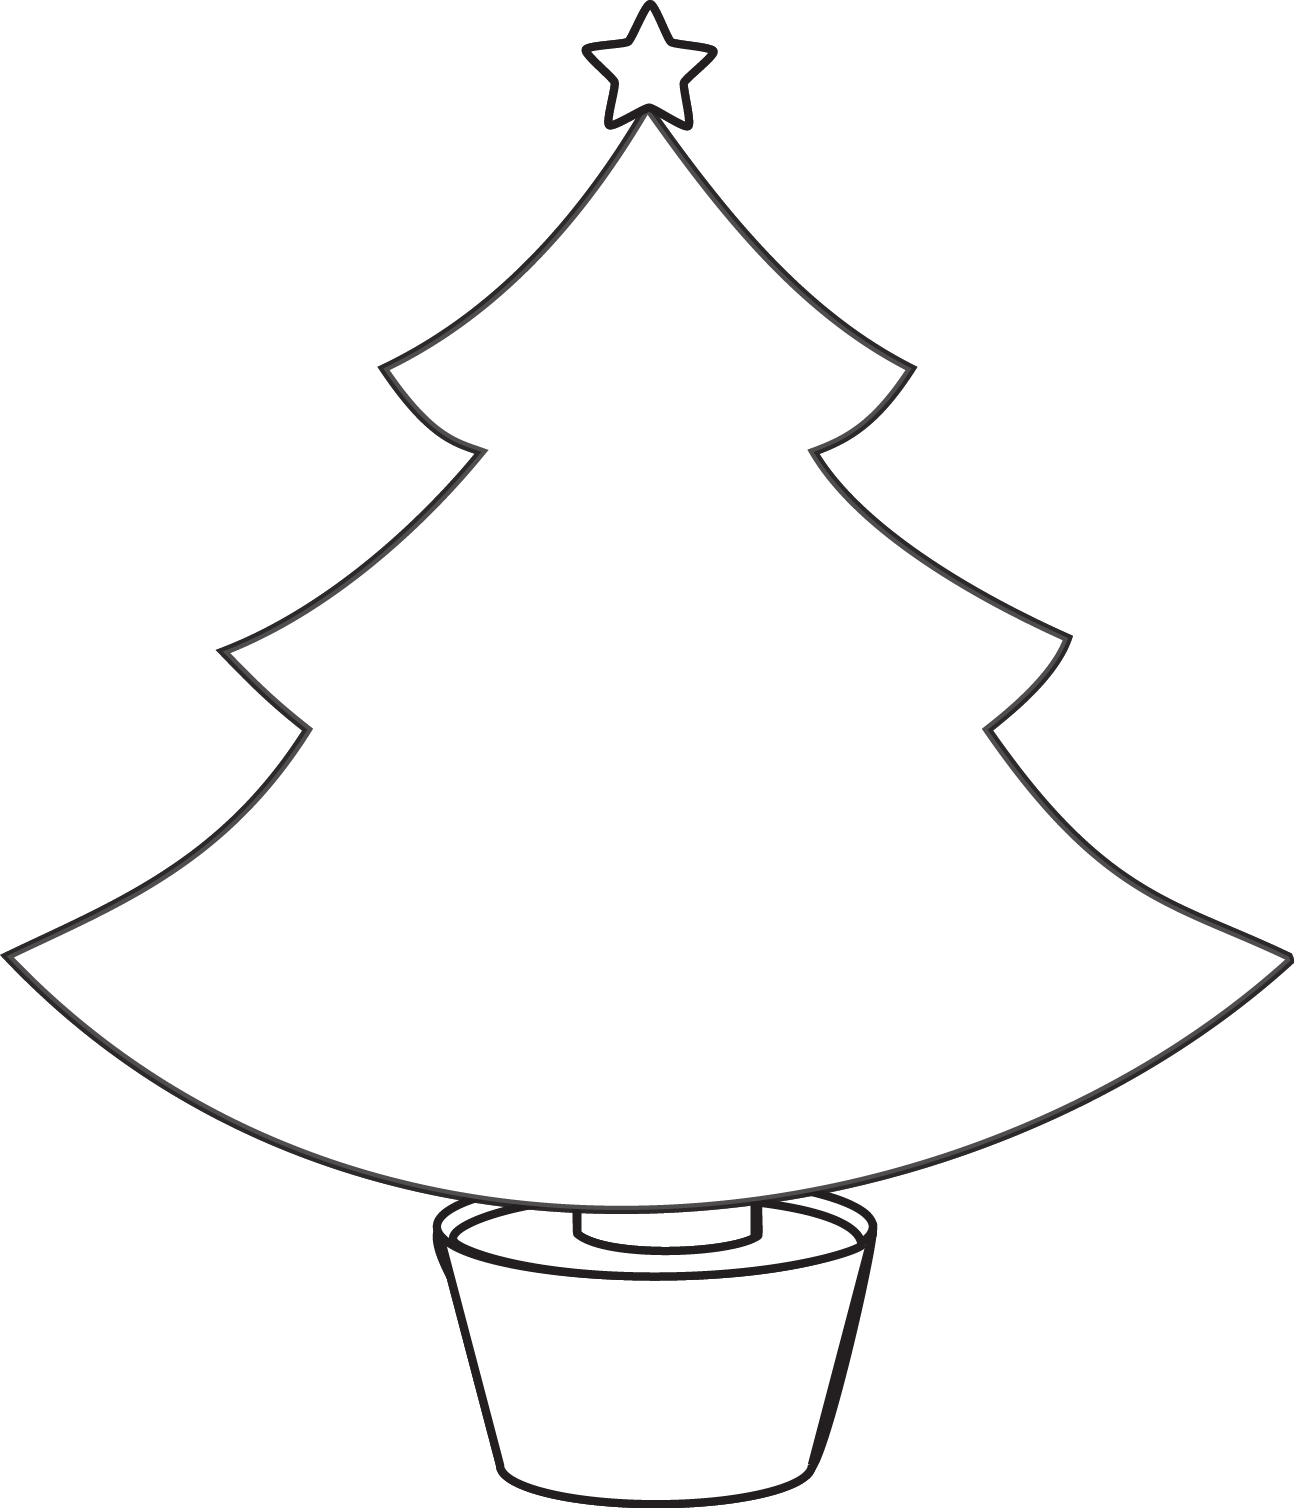 Christmas Tree Lights Coloring Pages at GetDrawings.com ...